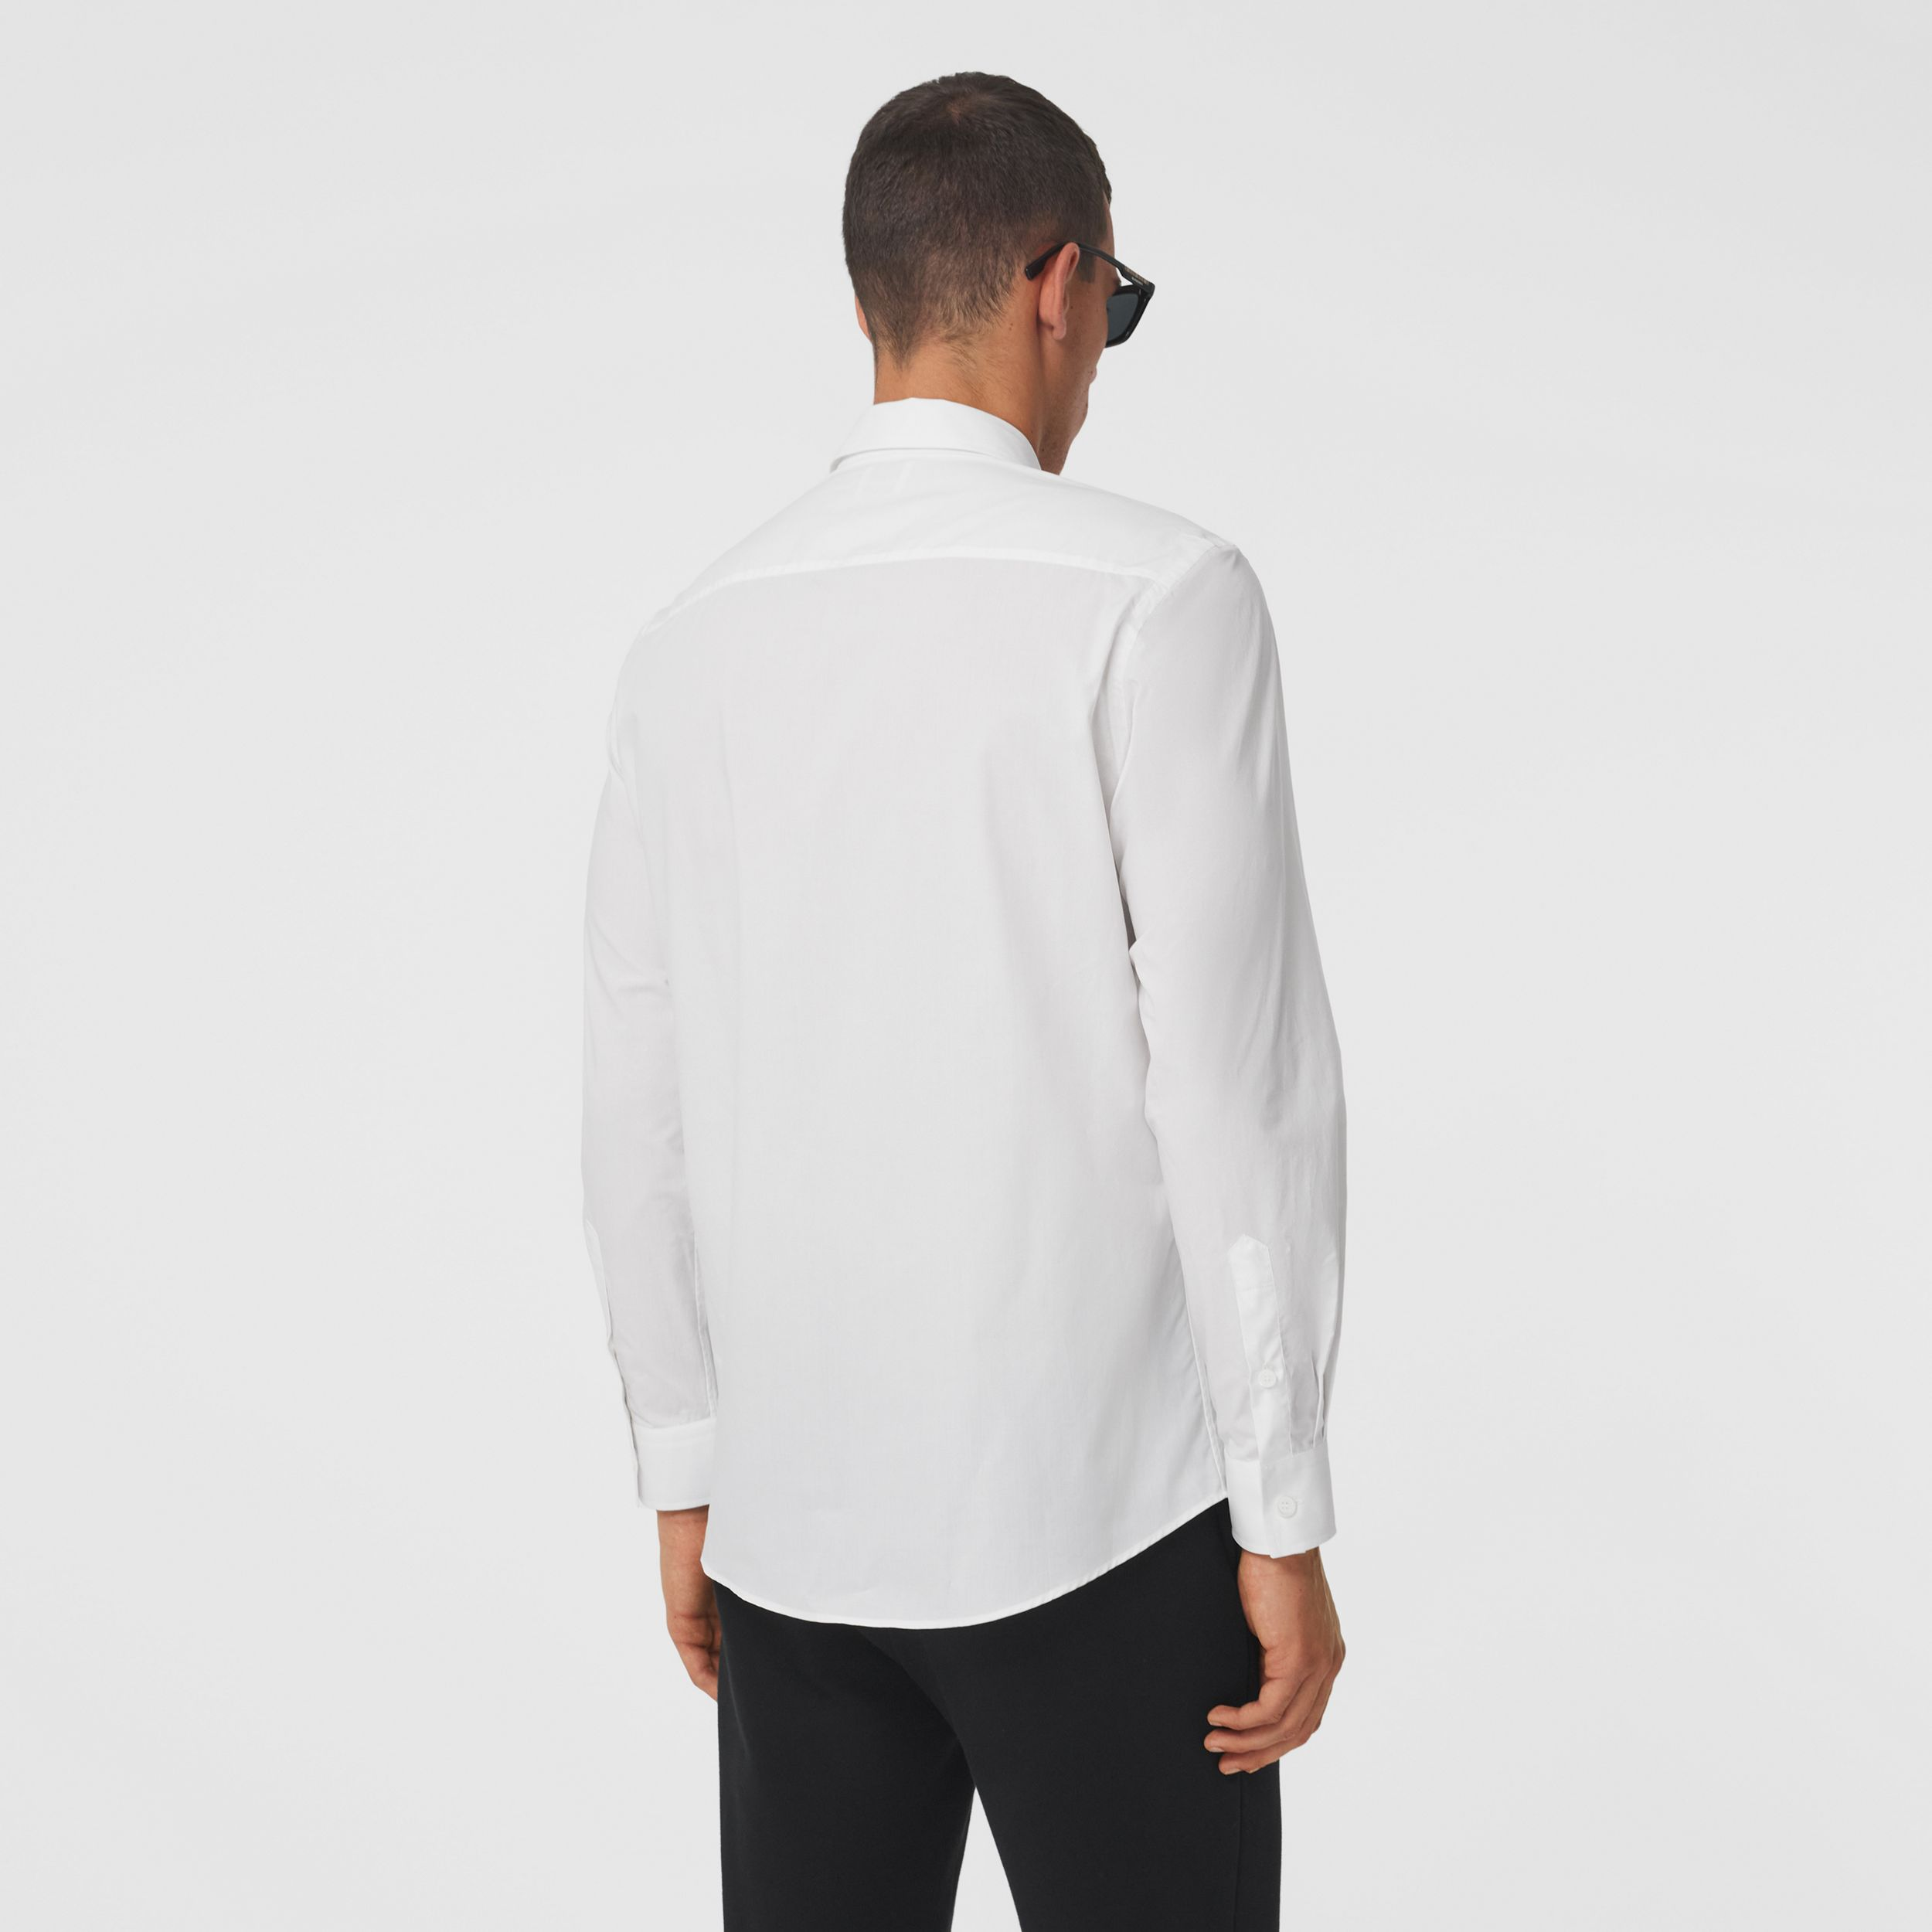 Logo Tape Cotton Shirt in White/black - Men | Burberry Australia - 3